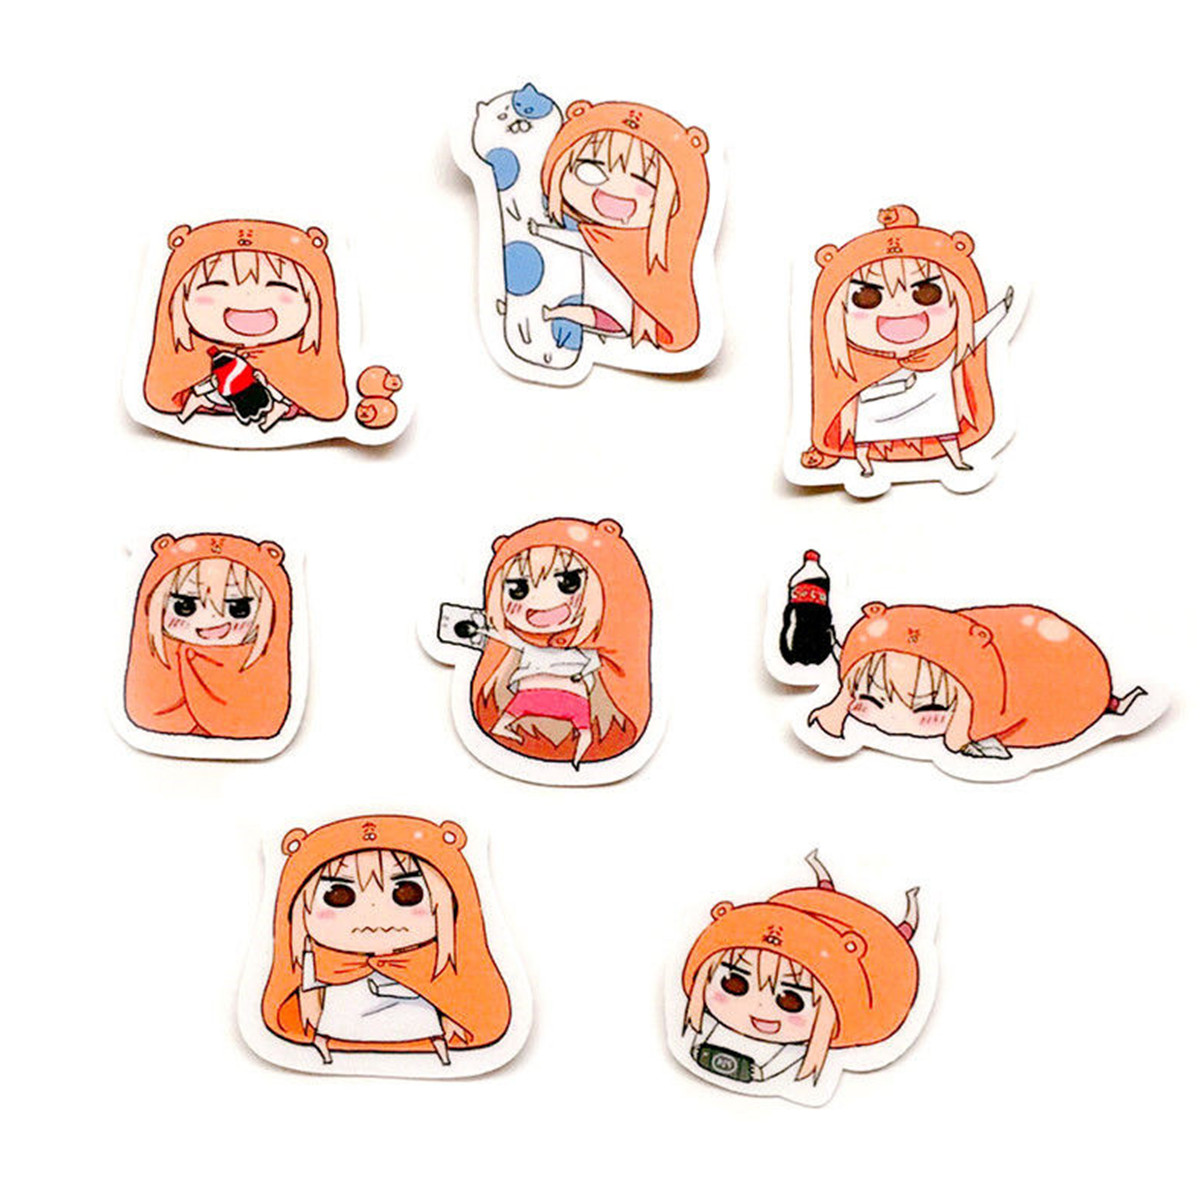 Umaru-chan Suitcase Stickers Phone Stickers Decal Cute 24pcs//set Himouto